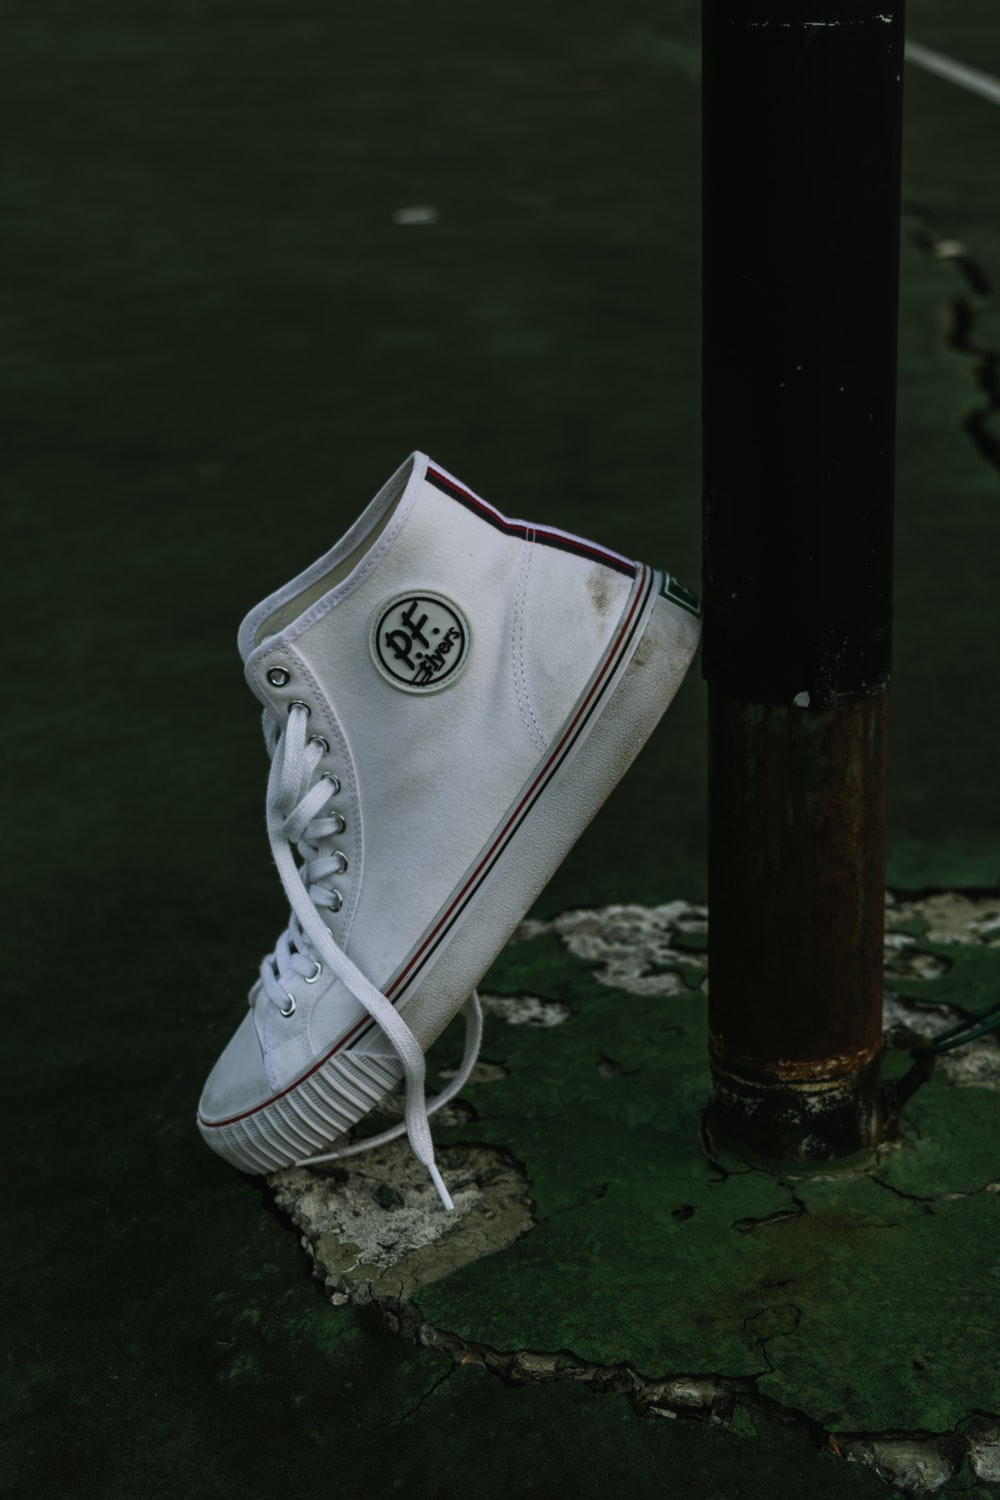 unpaired white PF high-top sneaker leaning on black post